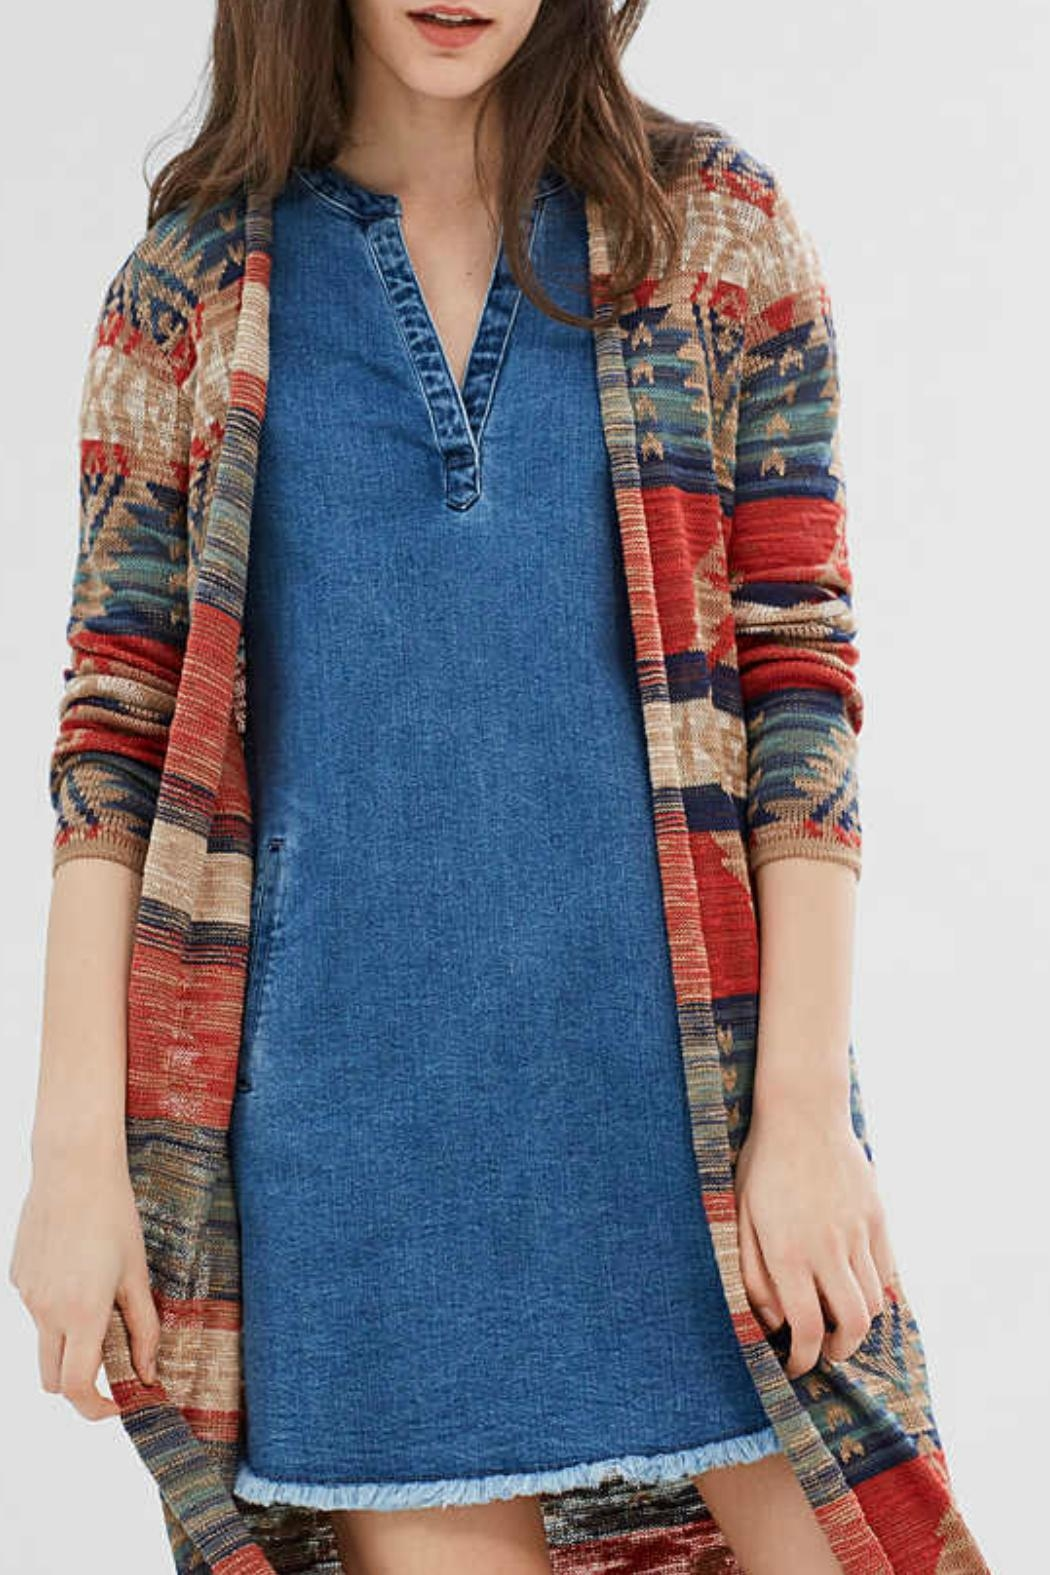 b9974e7cd Esprit Ikat Fine-Knit Cardigan from Canada by Blue Sky Fashions ...